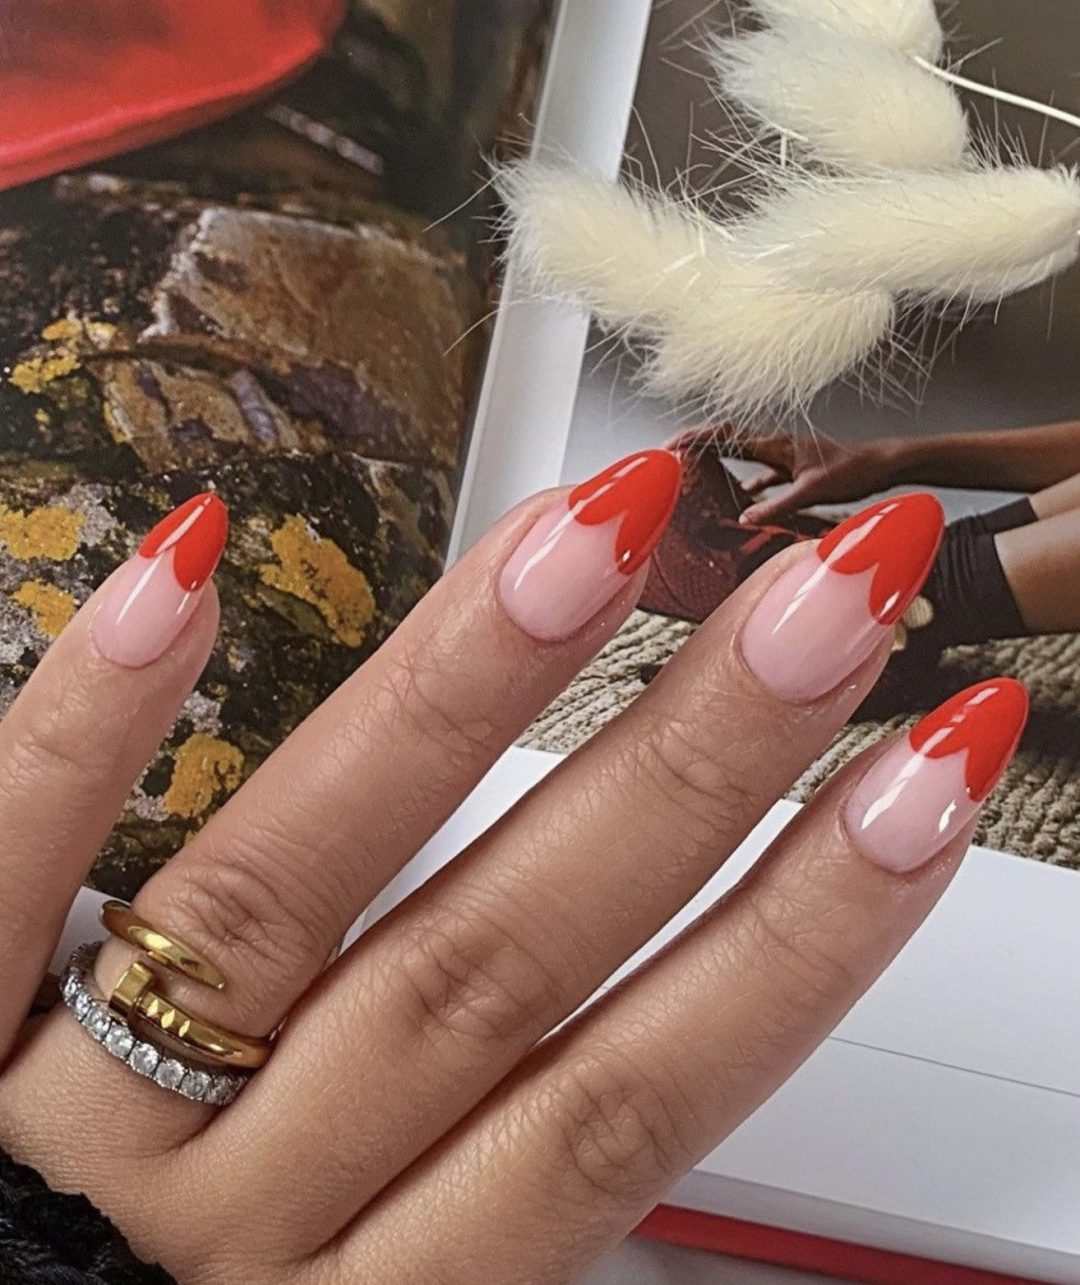 Cute red French tip nails with heart design